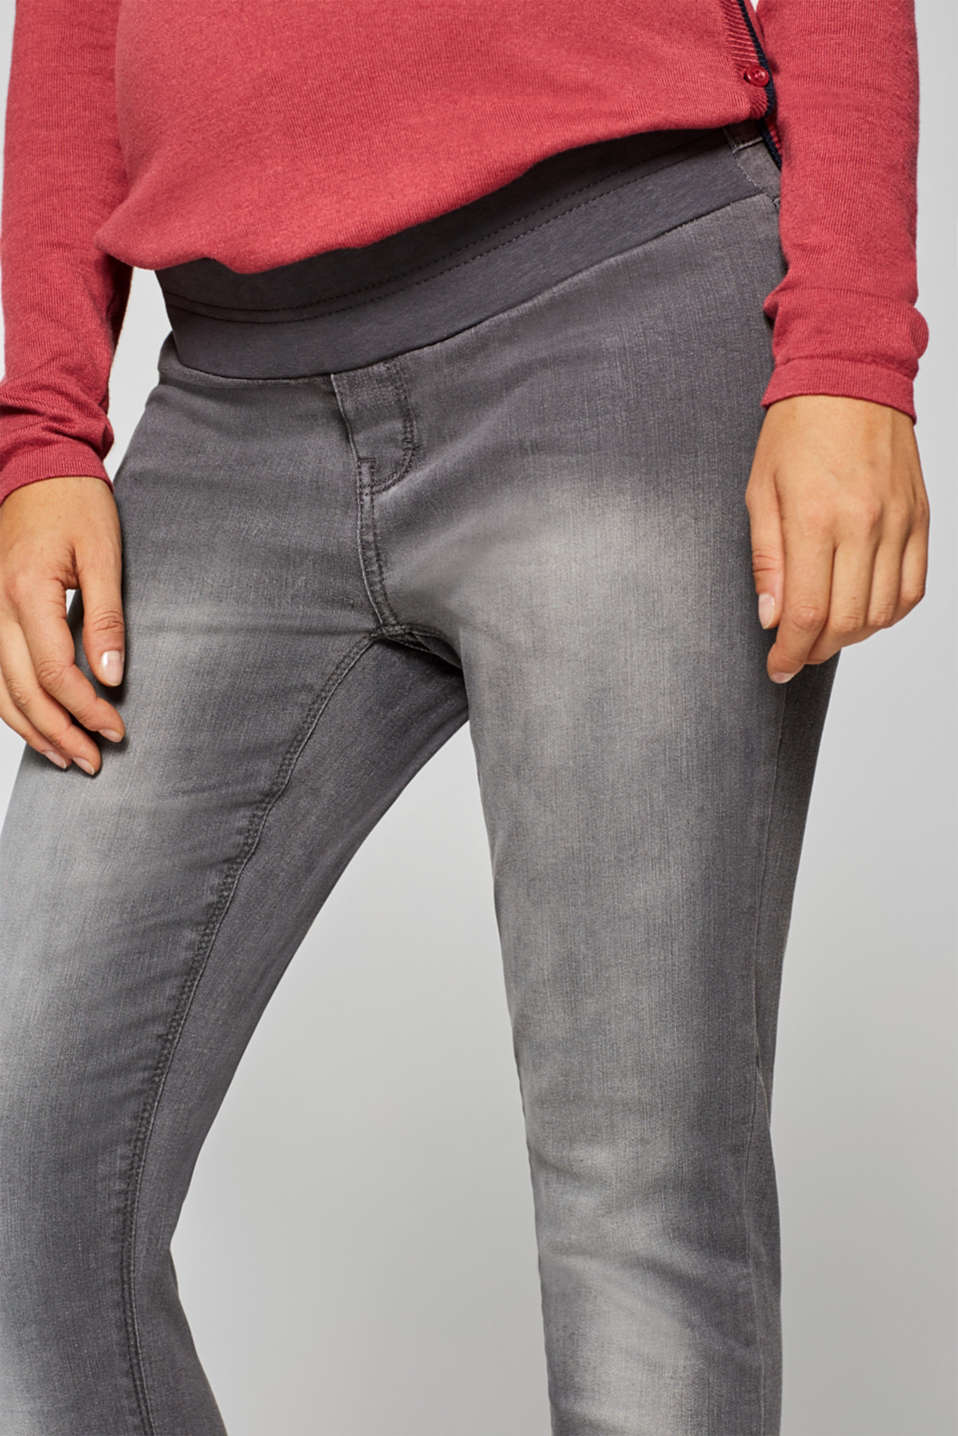 Jeggings with under-bump waistband, LCGREY DENIM, detail image number 1